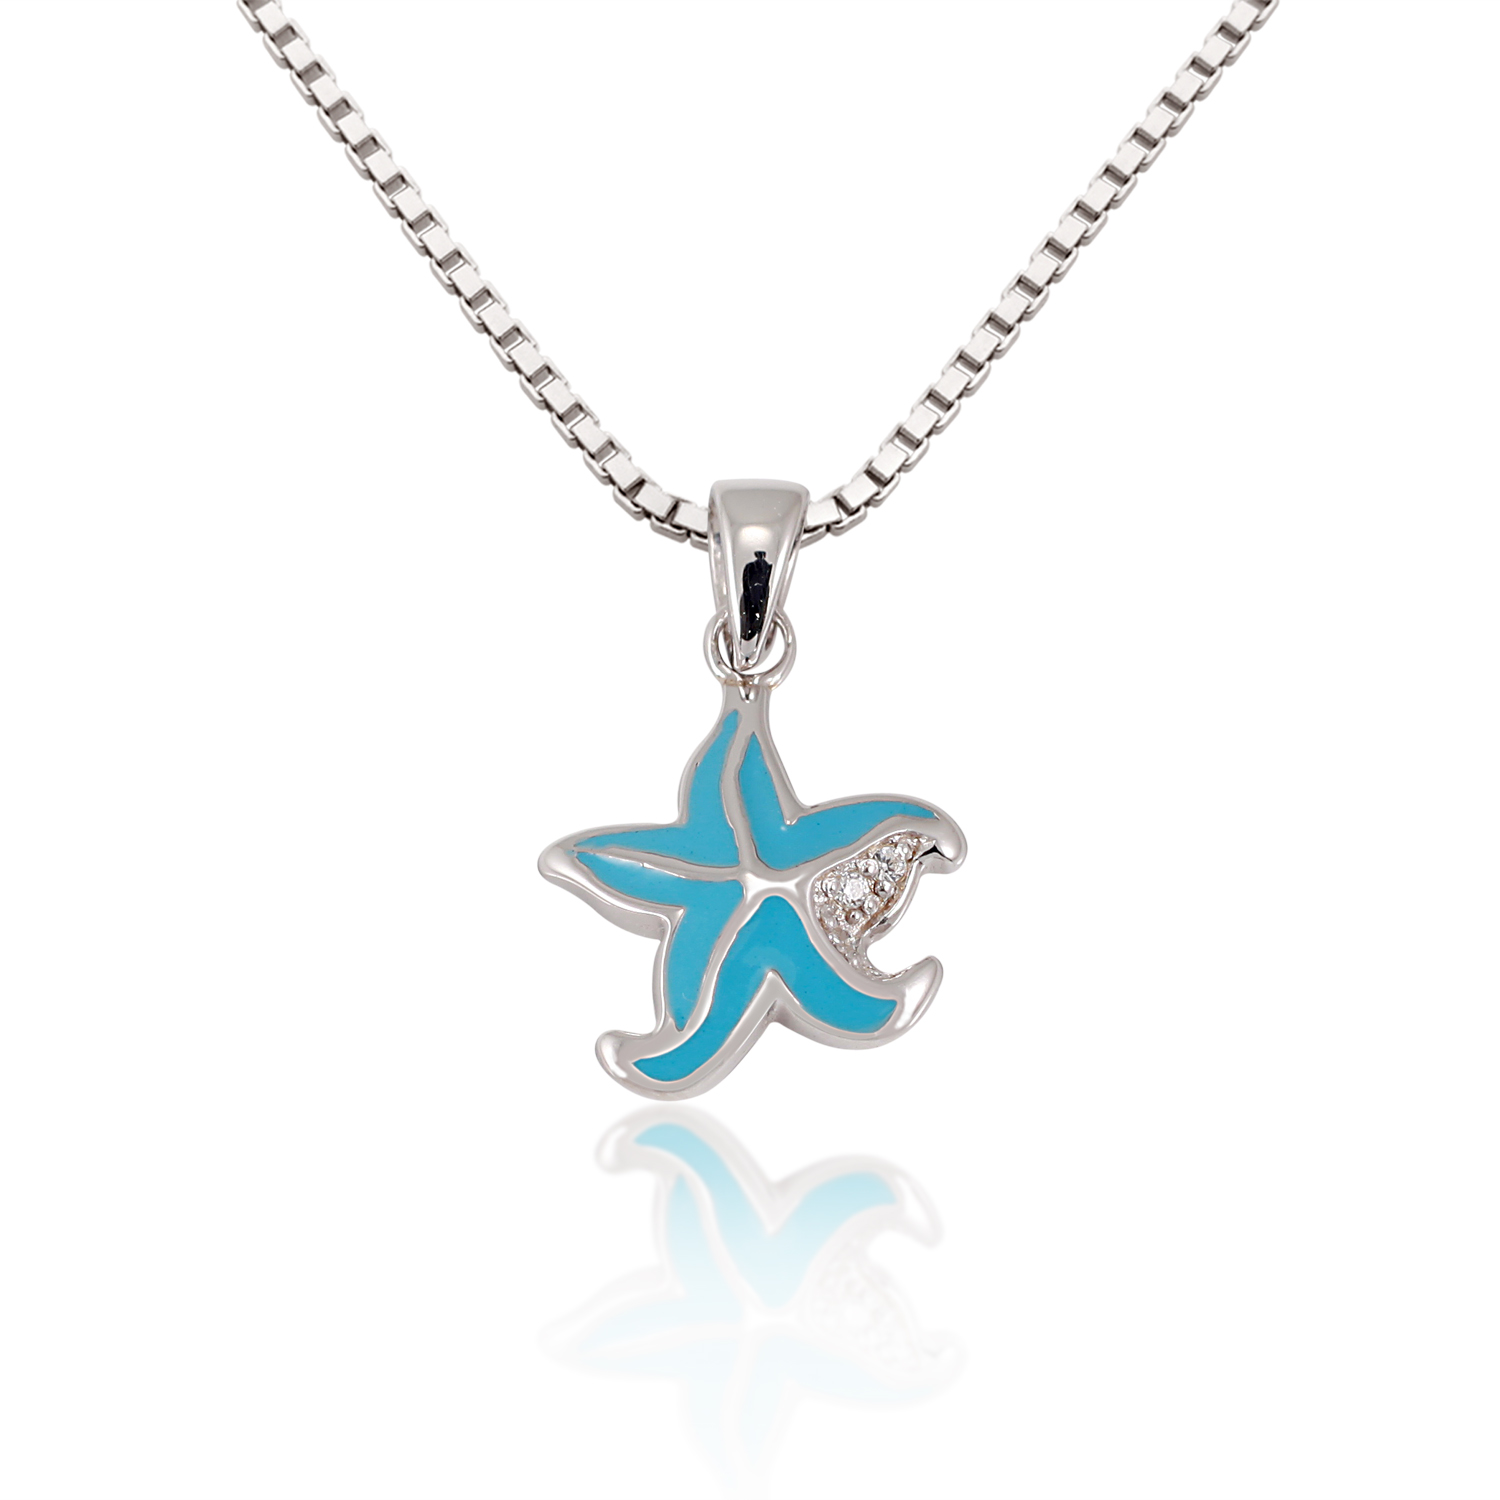 Children's 925 Sterling Silver Cubic Zirconia CZ Blue Starfish Pendant Necklace, 13-15 inches